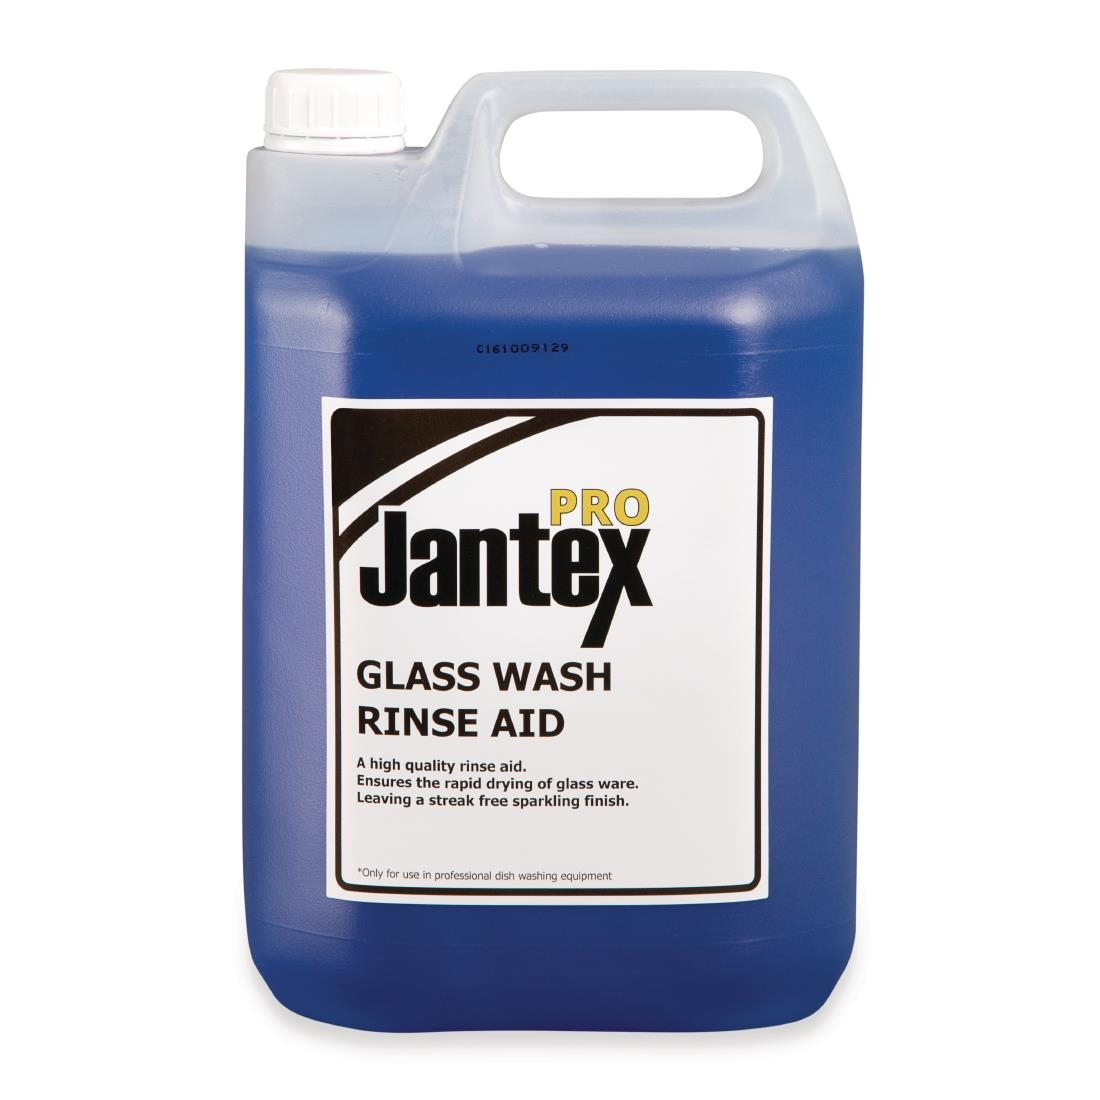 Image of Jantex Pro Glasswasher Rinse Aid Concentrate 5Ltr